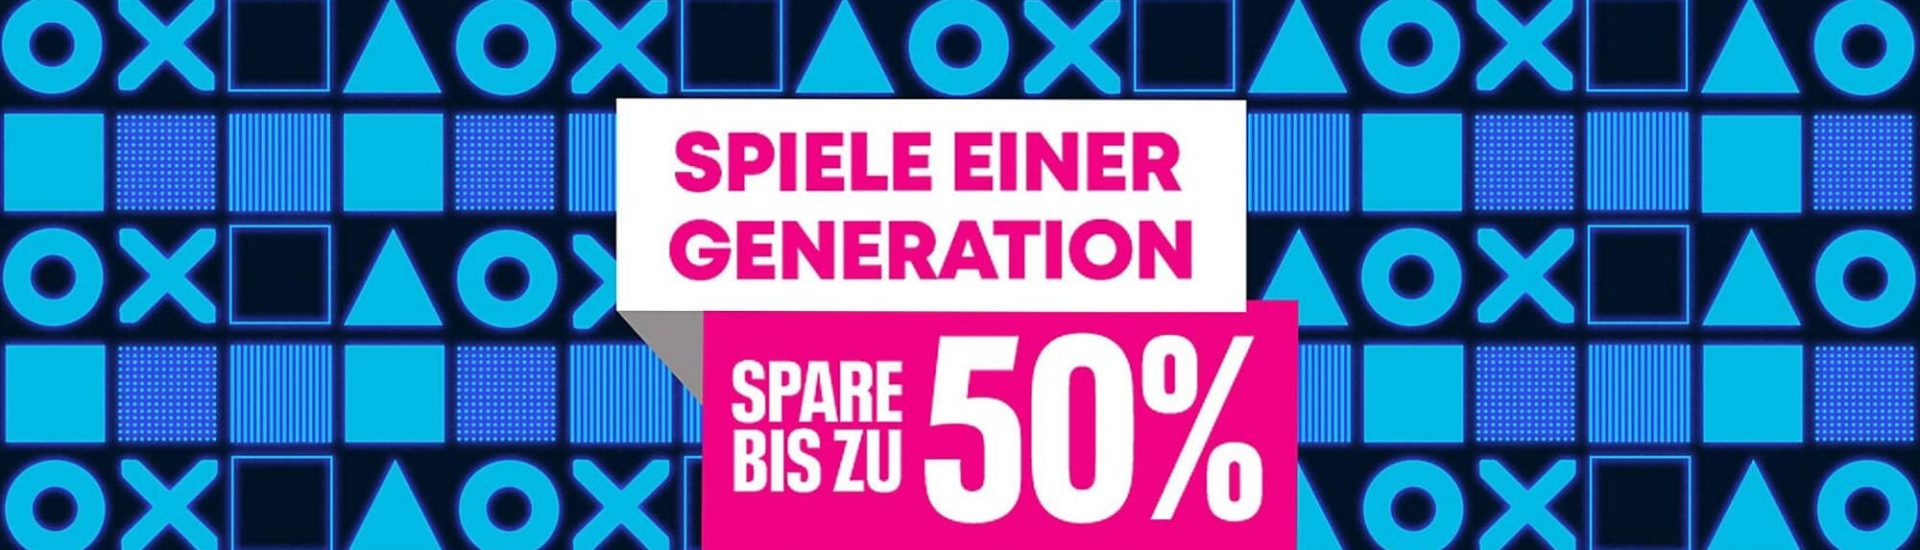 Sale im Playstation Store: PS4-Hits wie Ghost of Tsushima im Angebot